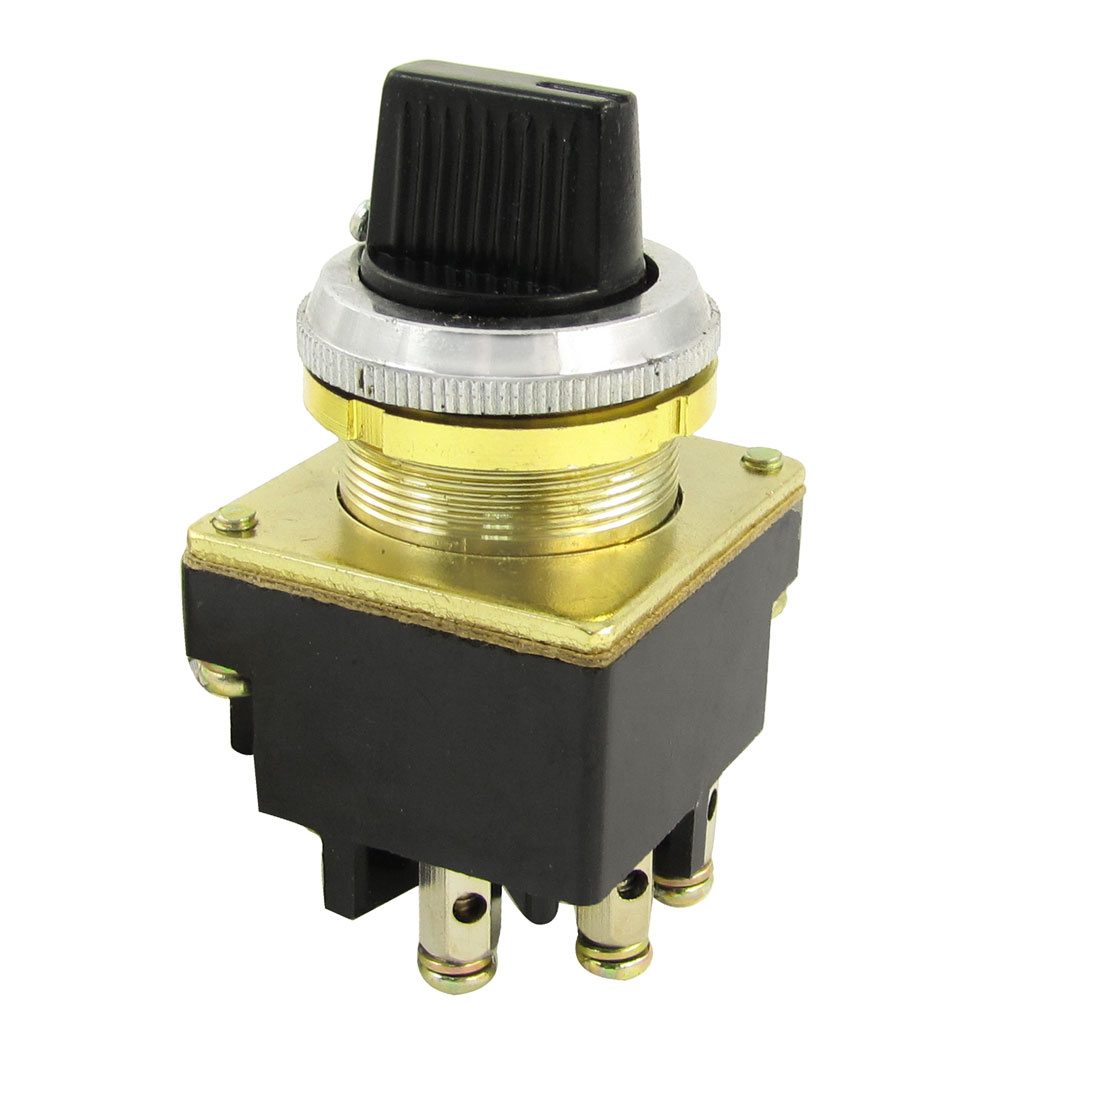 380V 6A 220V 8A 127V 10A 3-Terminals 1NO 1NC 3 Position Selector Control Switch